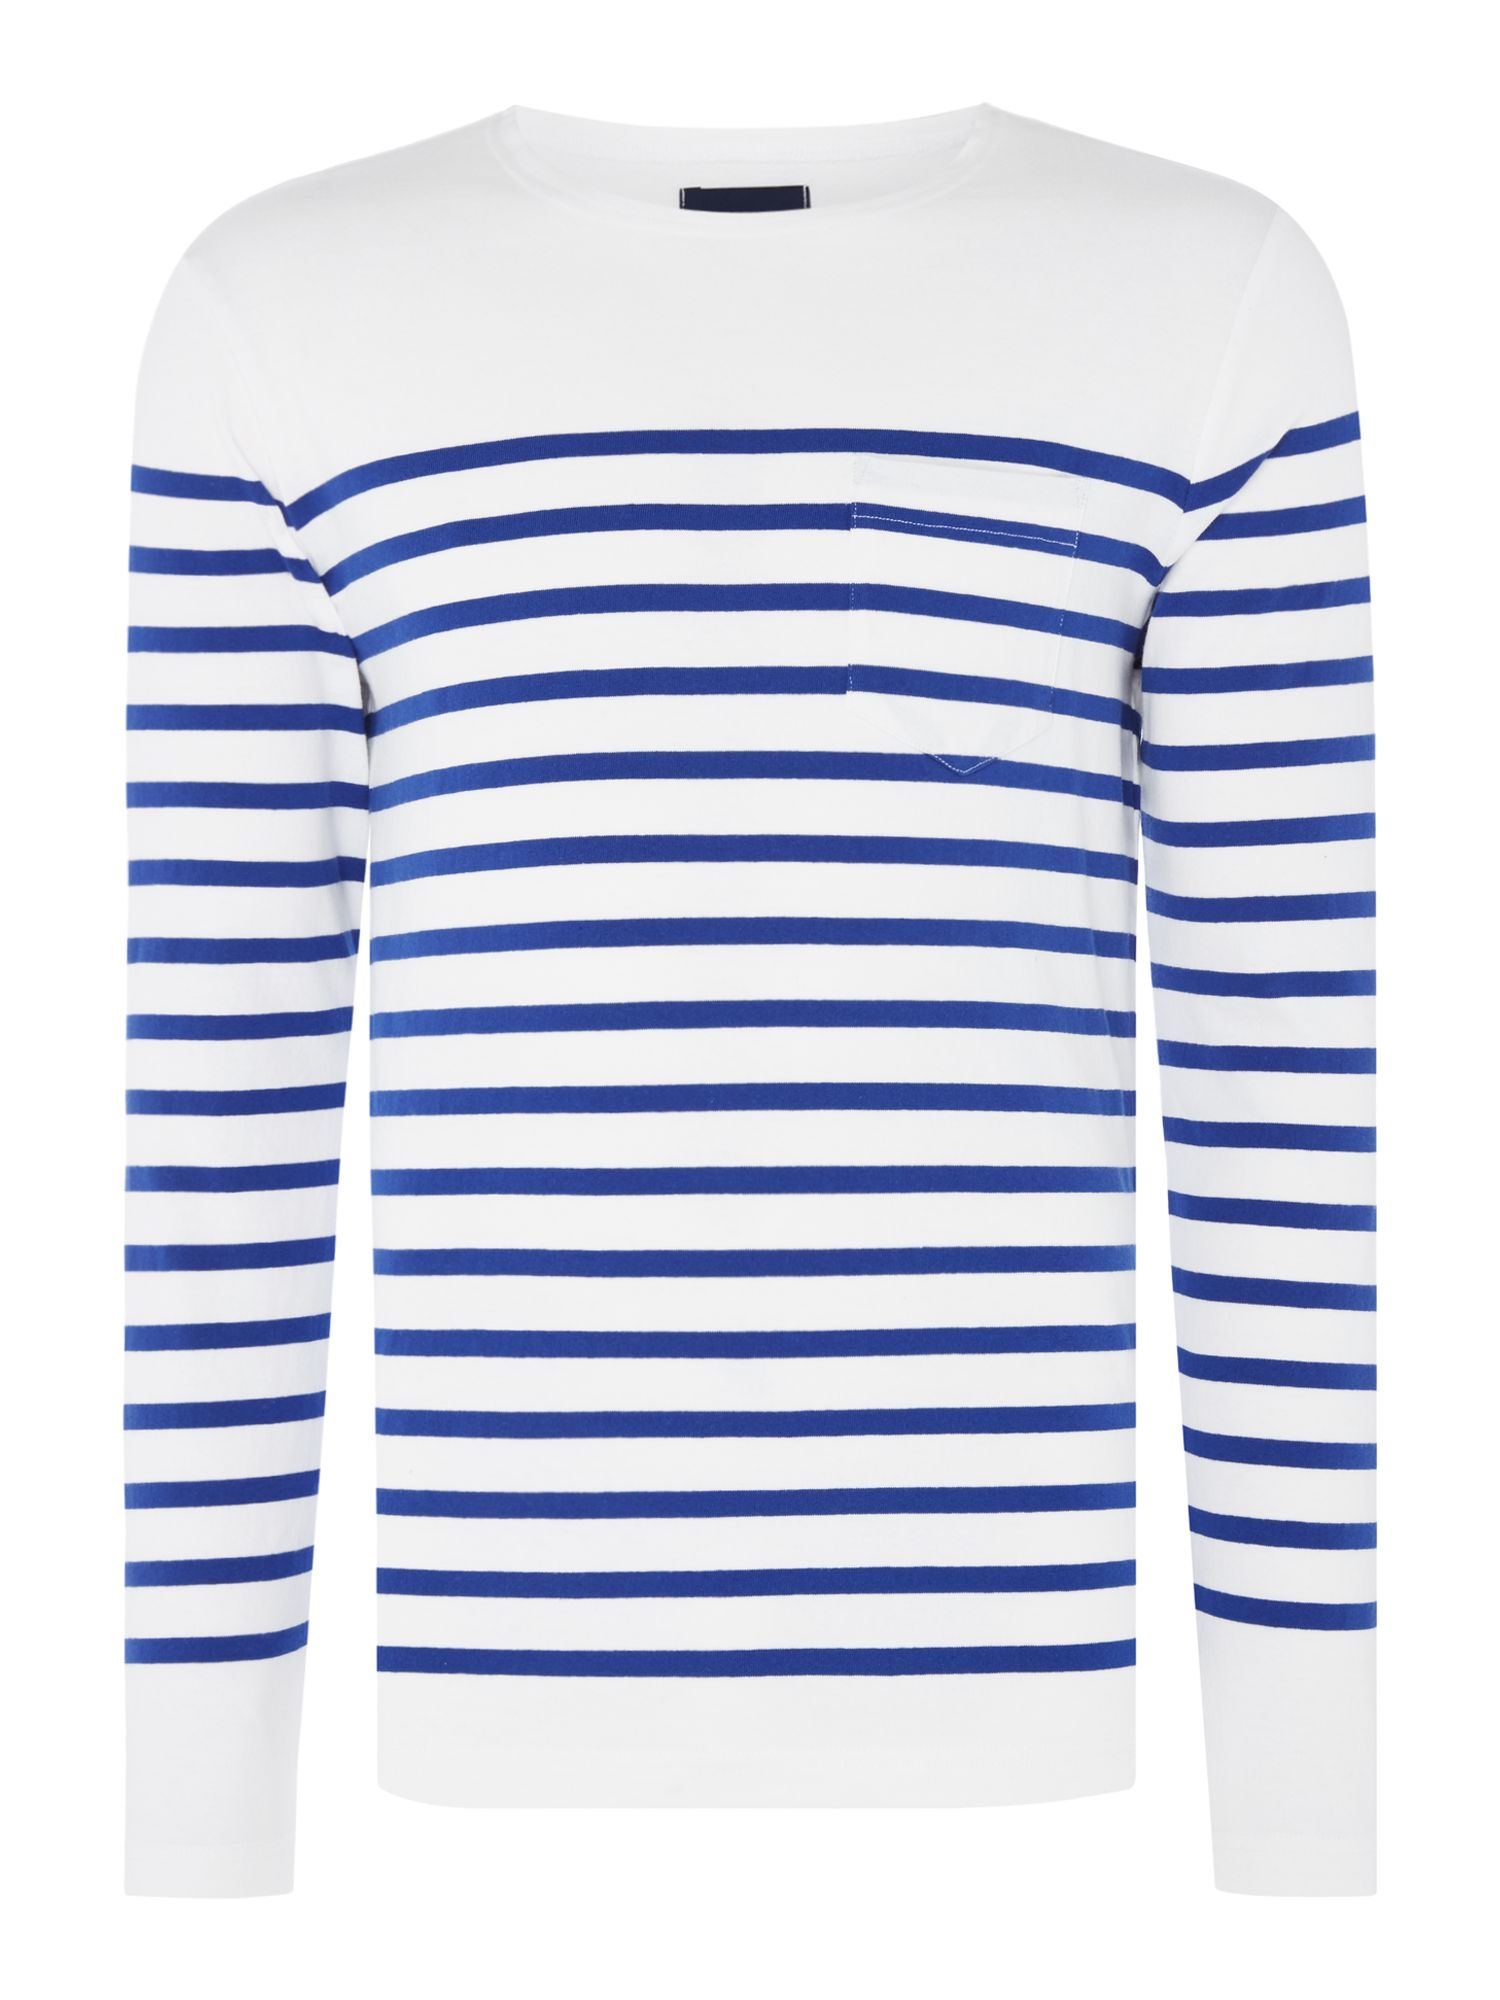 Men's Scotch & Soda Engineered Breton Stripe Sweatshirt, White